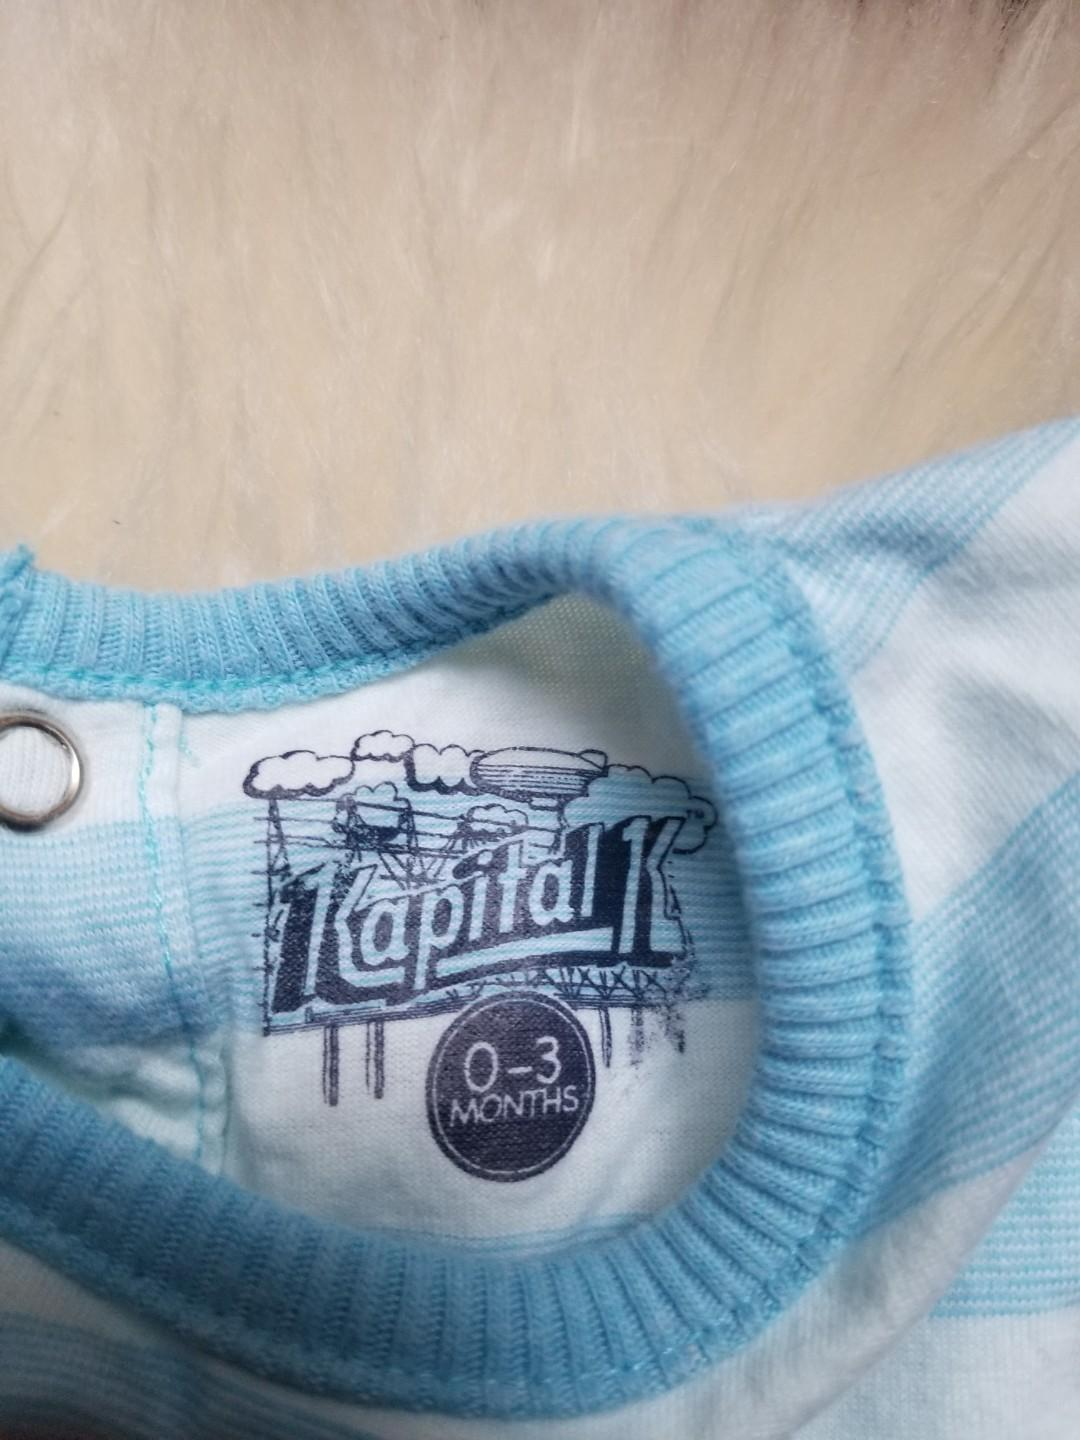 Designer baby clothing lot. Size 0-3mths. New.  Kapital K British monkey romper $11 Baby Gap favourite waffle onesie $7 Santas favourite dude. Free! With purchases Take all for $14 pick up main and Gerrard or pick up 20 bay or